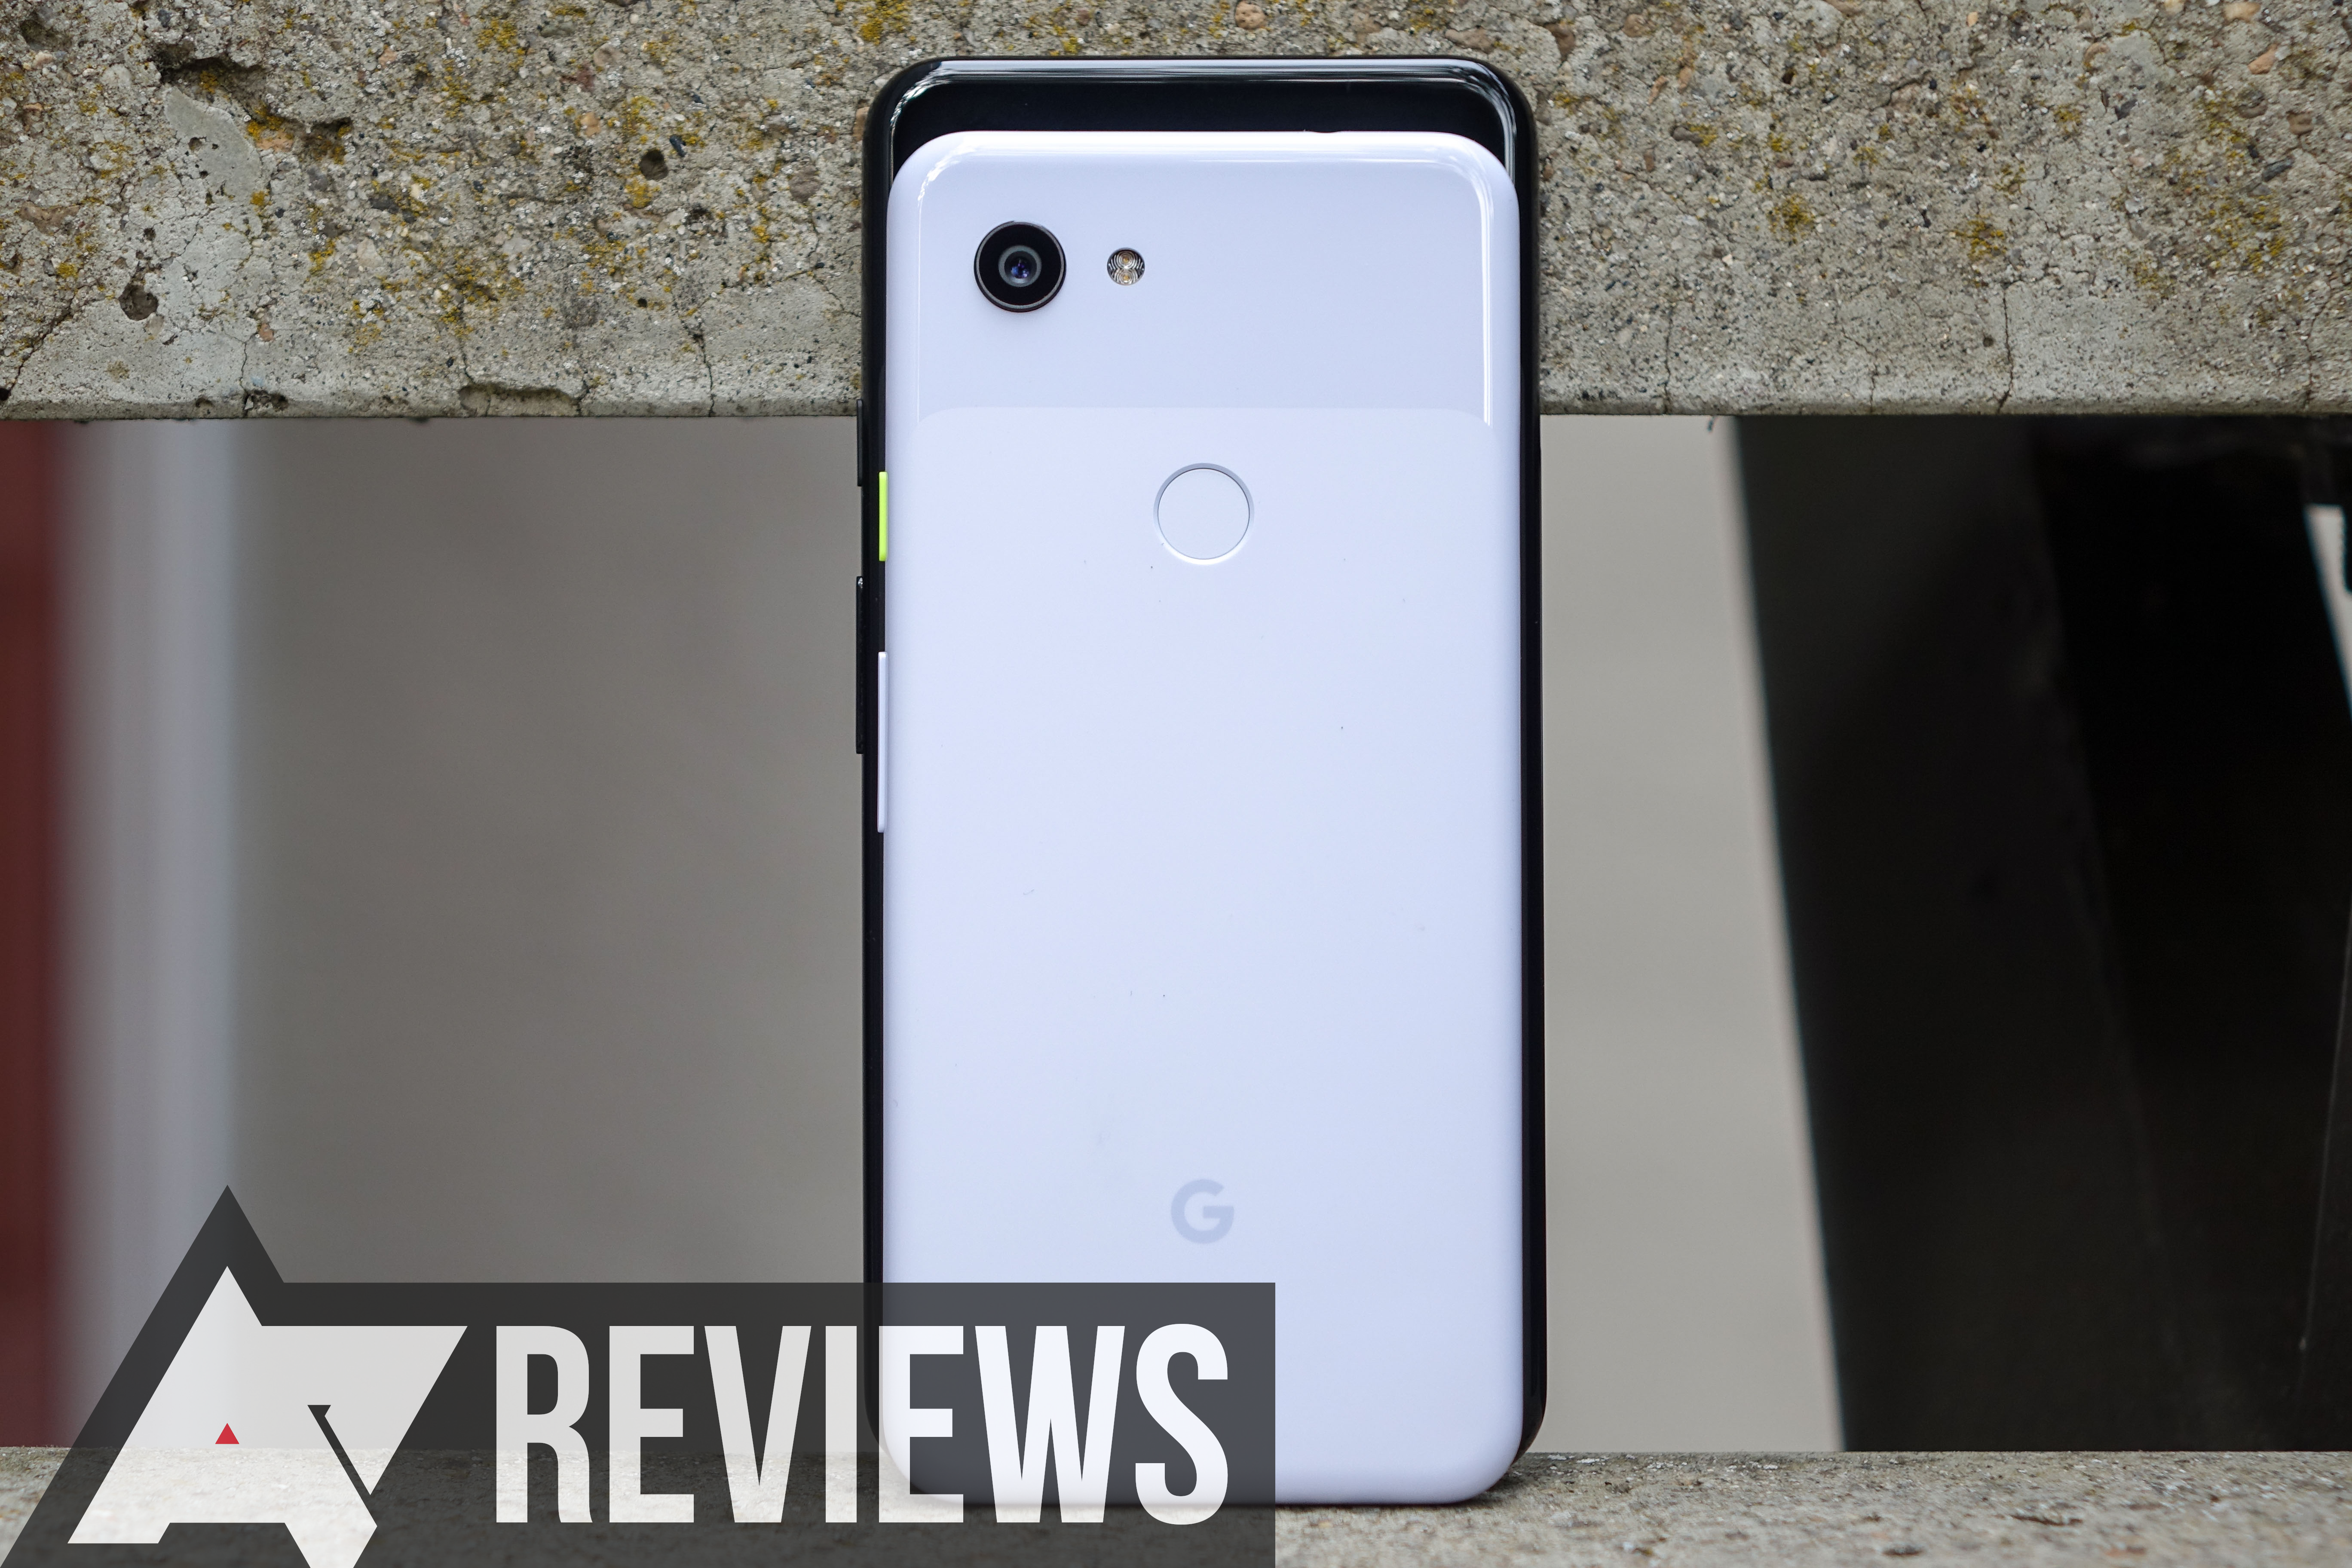 Pixel 3a and 3a XL review: They make almost any phone under $500